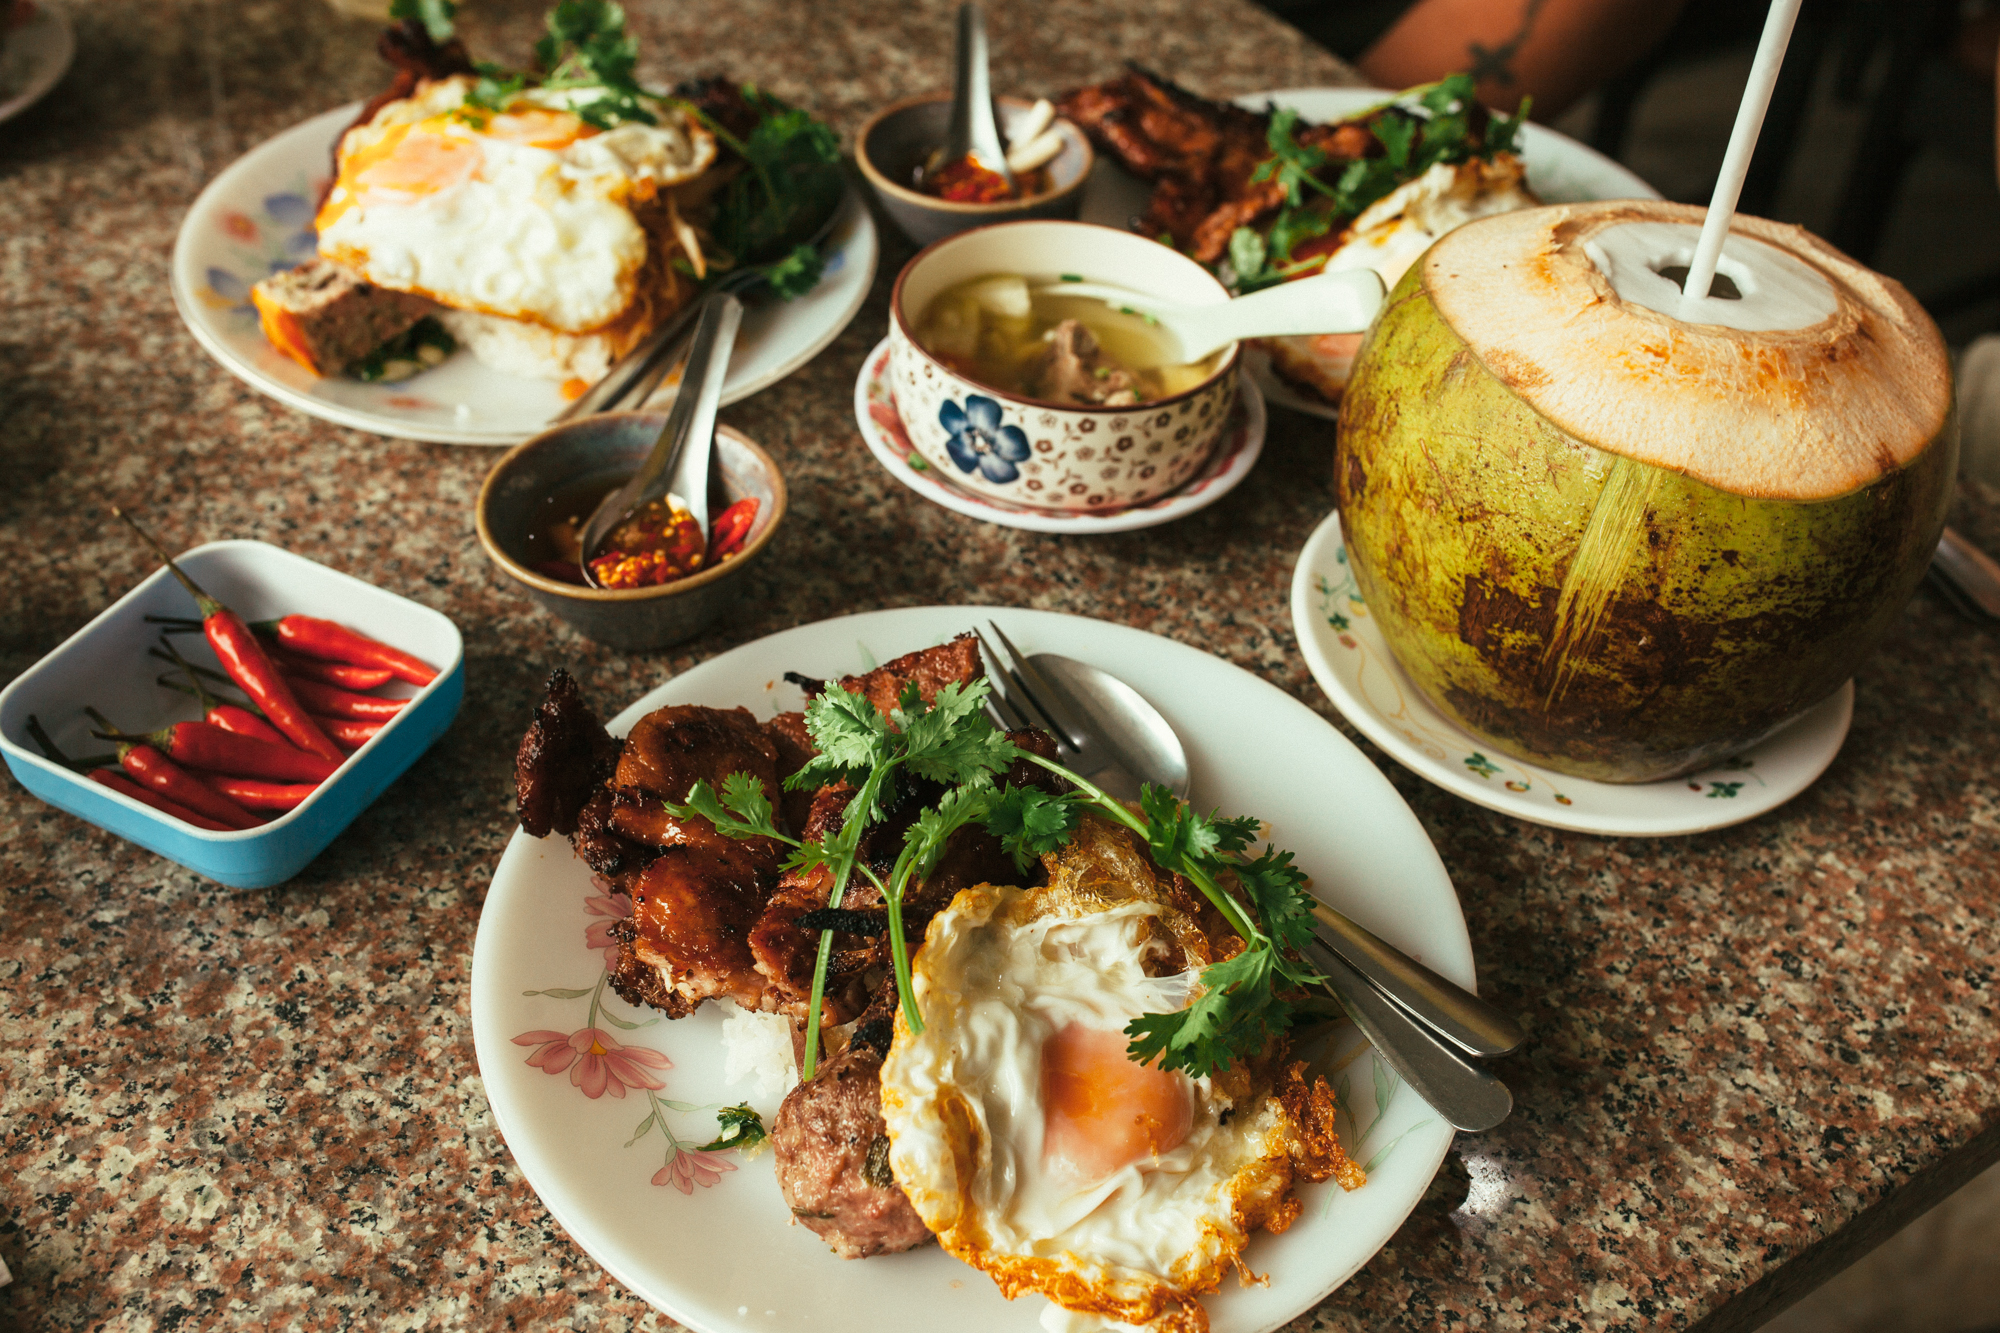 We ordered #1 on the menu with a few add ons; shredded pork, fried egg, pork pie and meatball. Also with a couple small side of winter melon and mushroom soup.